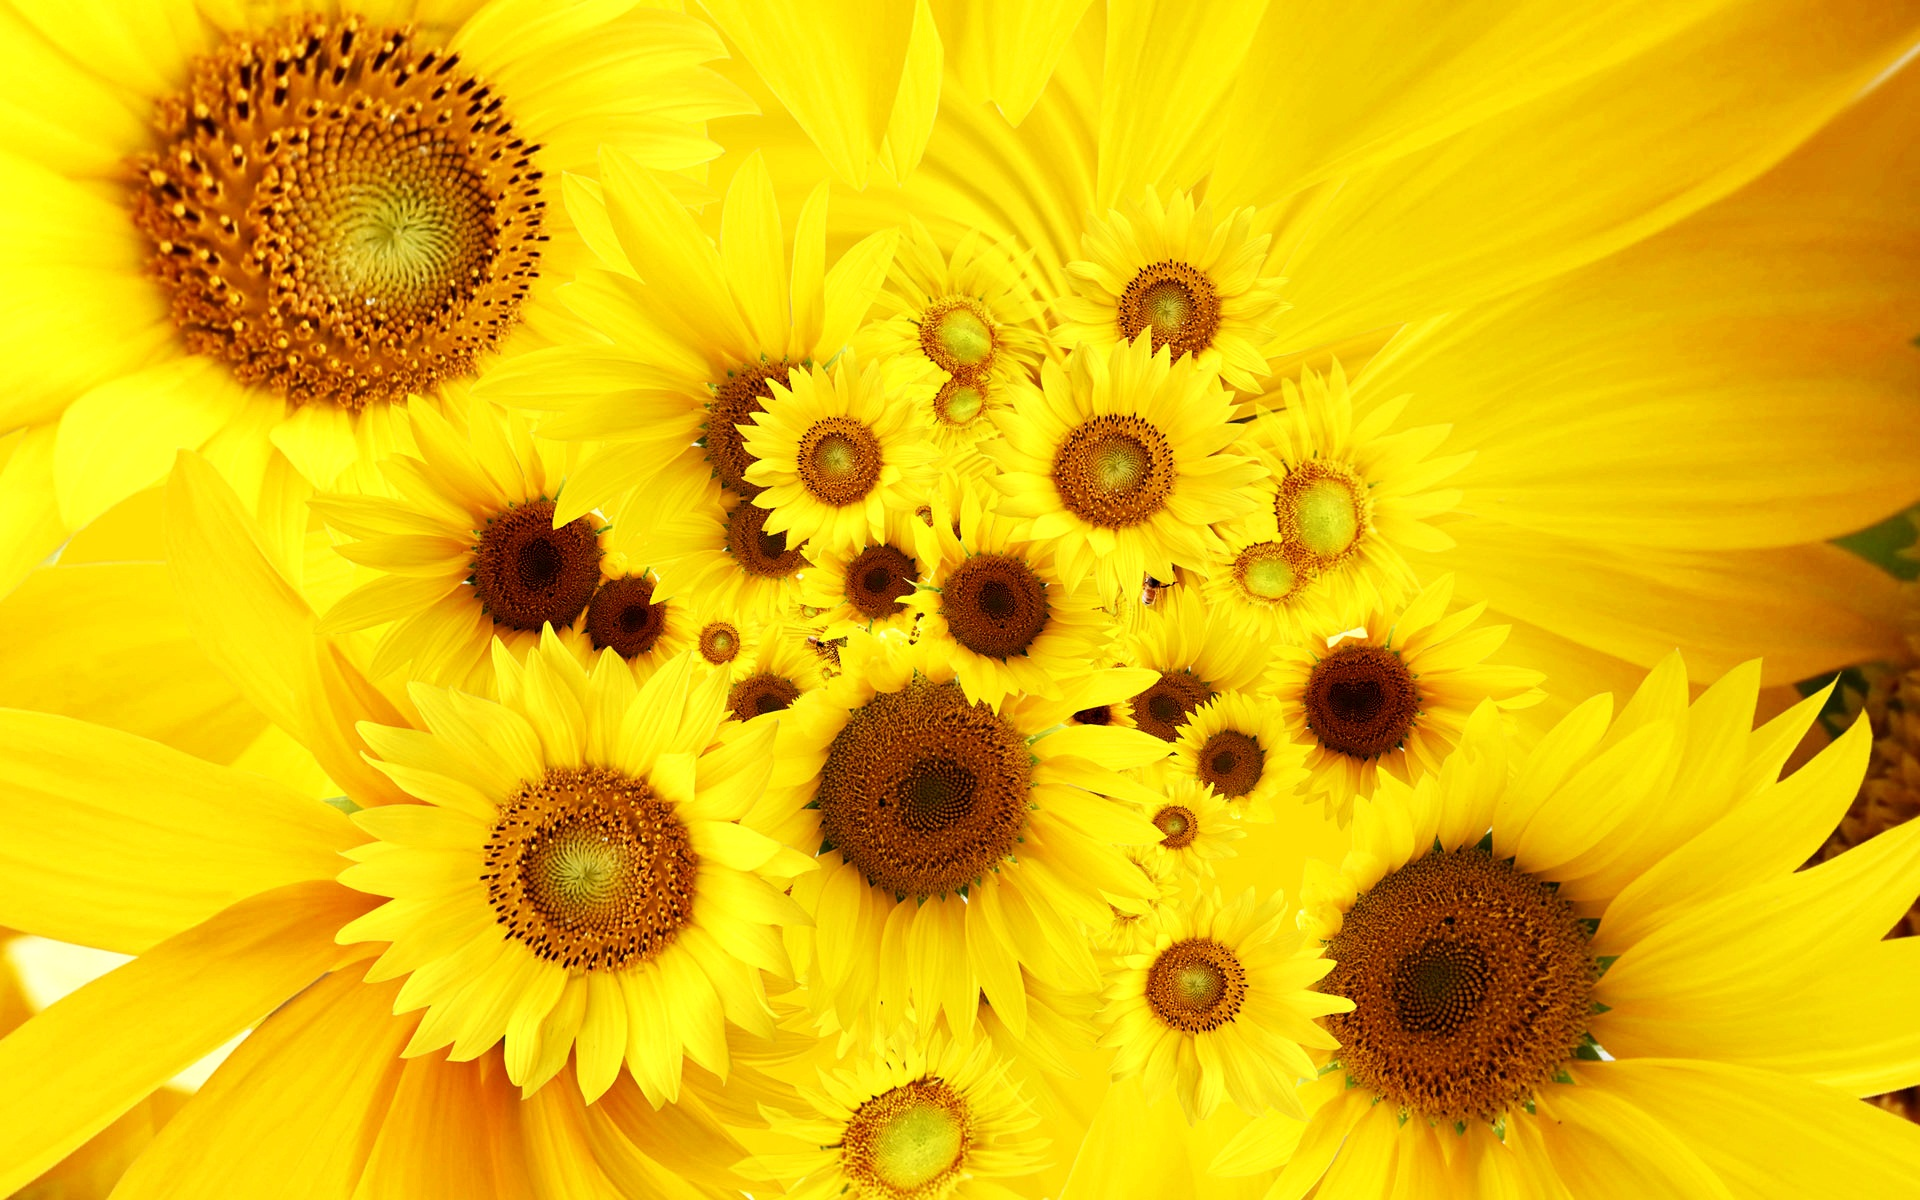 Cool Sunflowers Yellow Bright HD Desktop Backgrounds 1920x1200